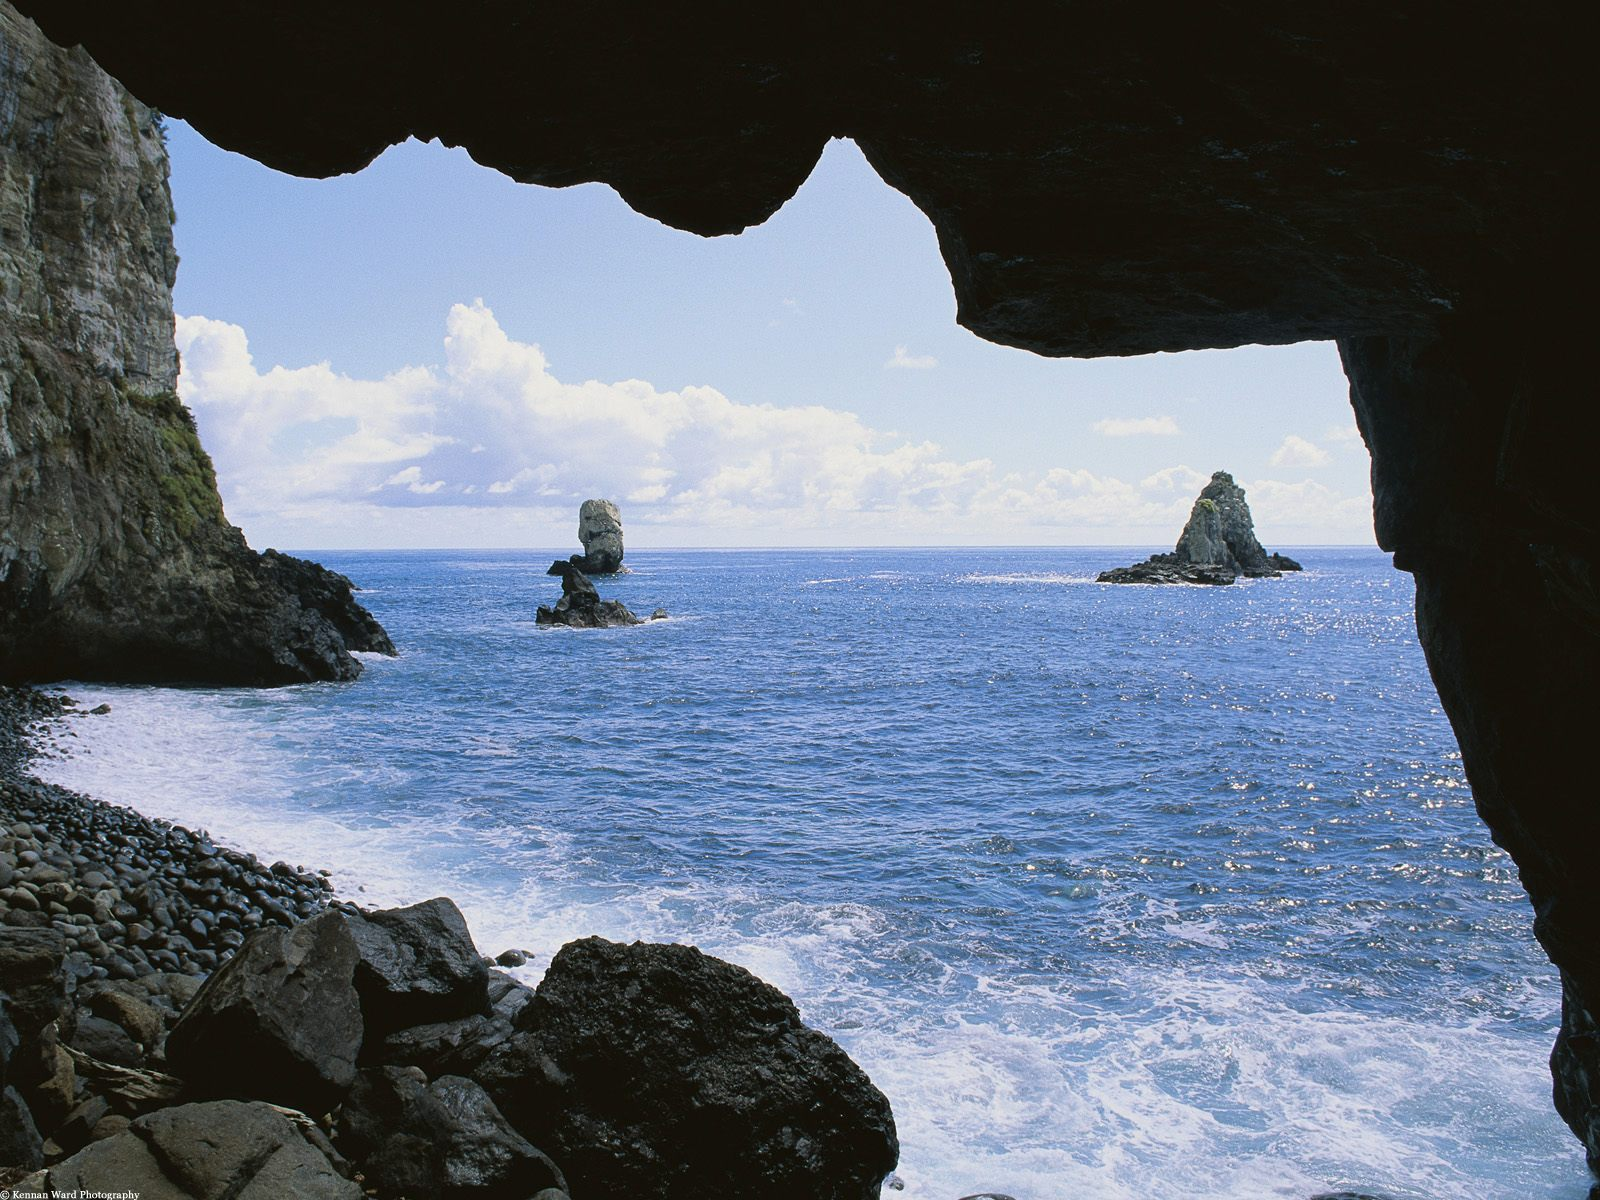 Costa Rica, America, Sea Cave view